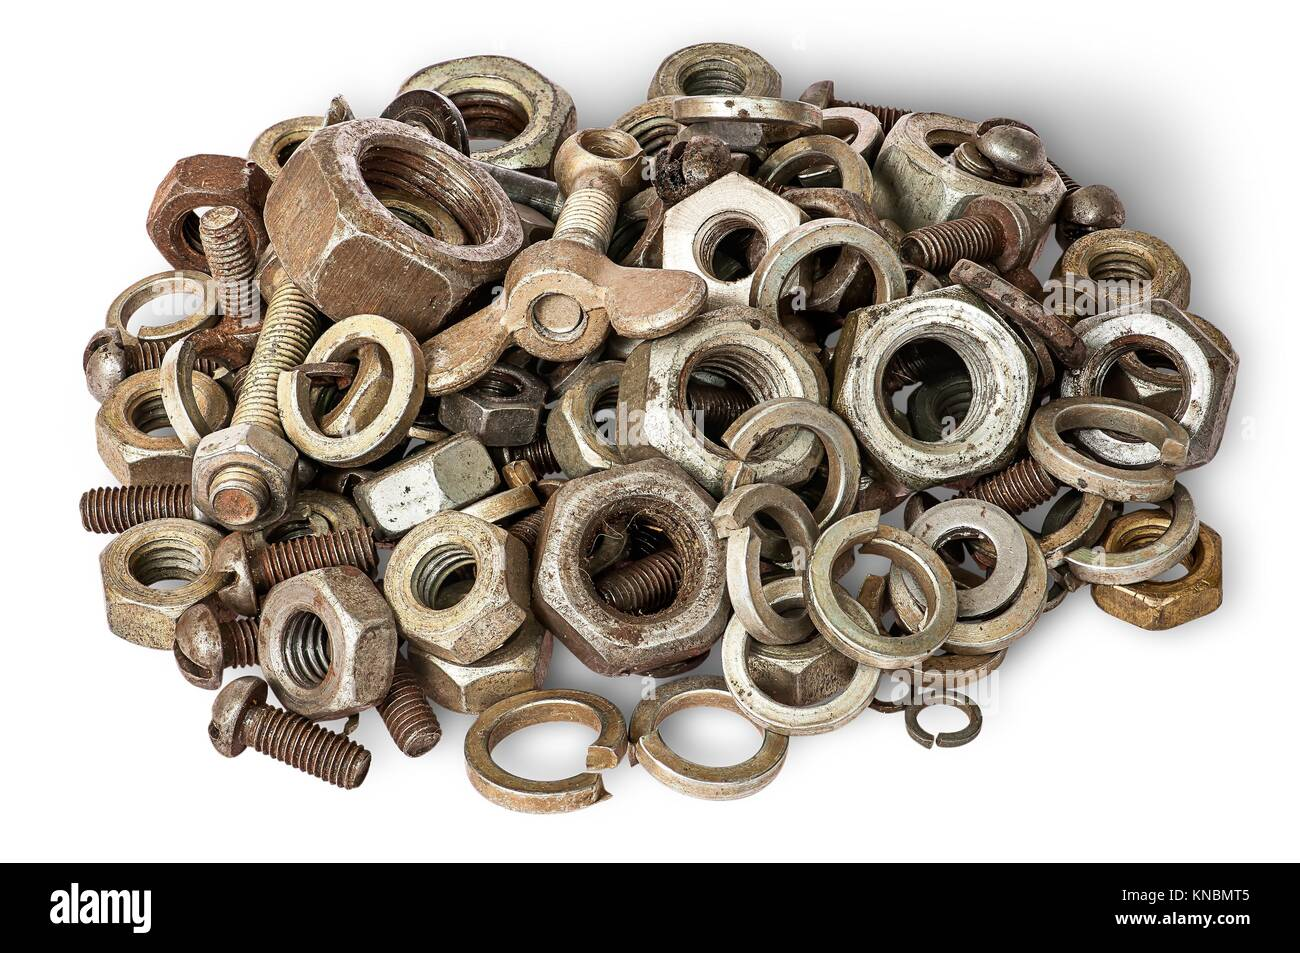 Pile of old fasteners top view isolated on white background. - Stock Image